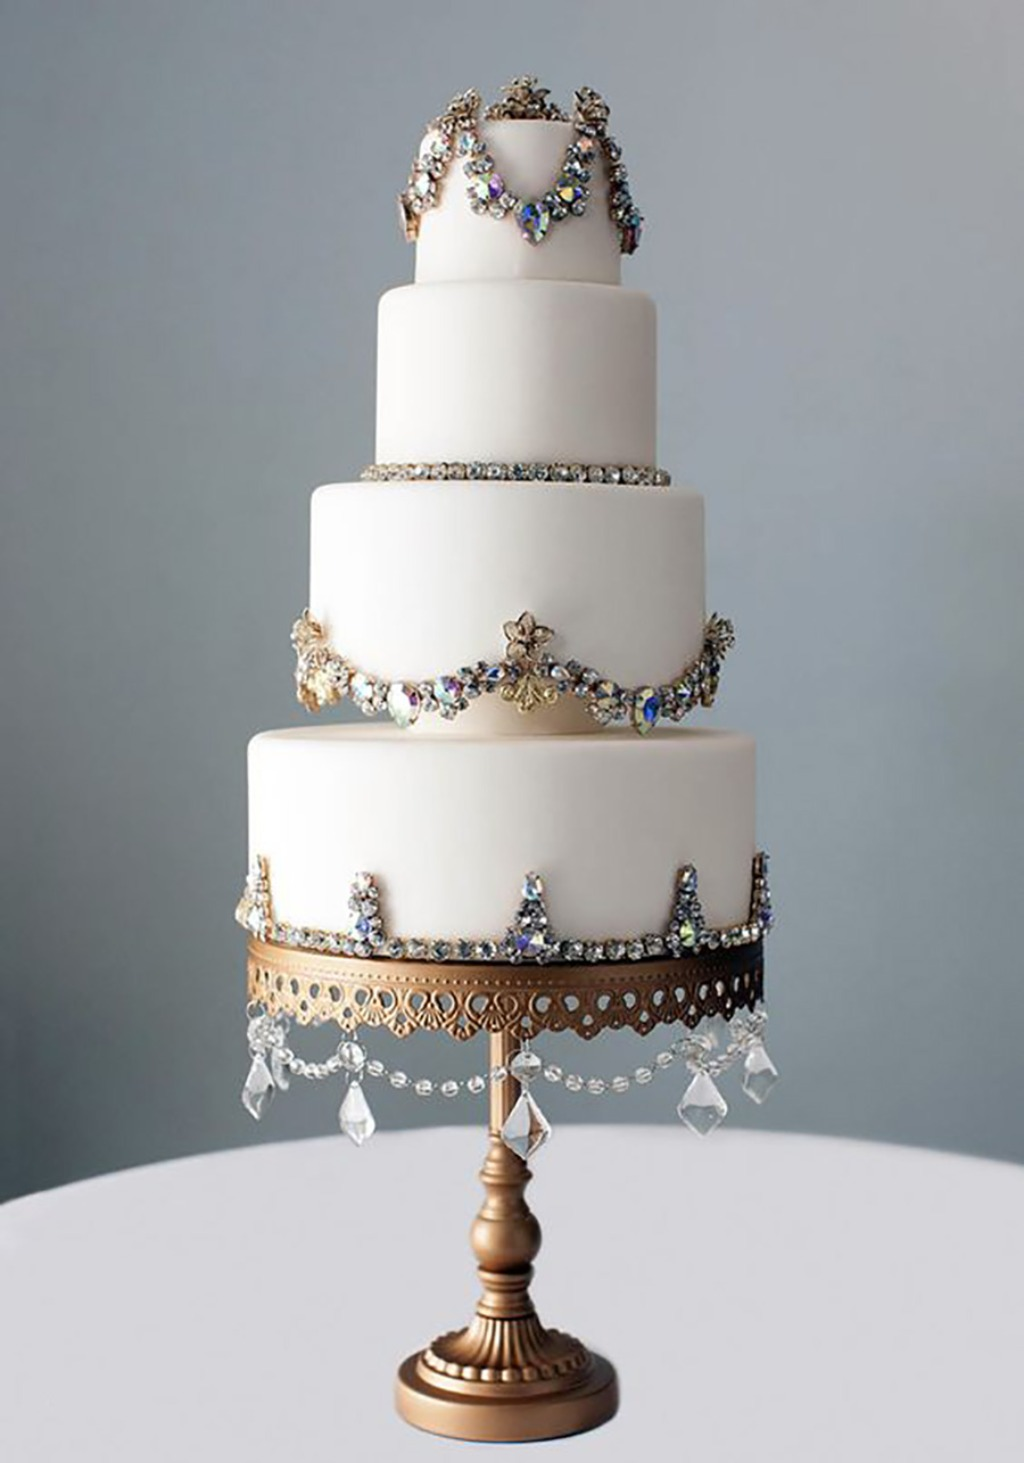 Beautifully Jeweled Tiered Wedding Cake on Chandelier Cake Stand